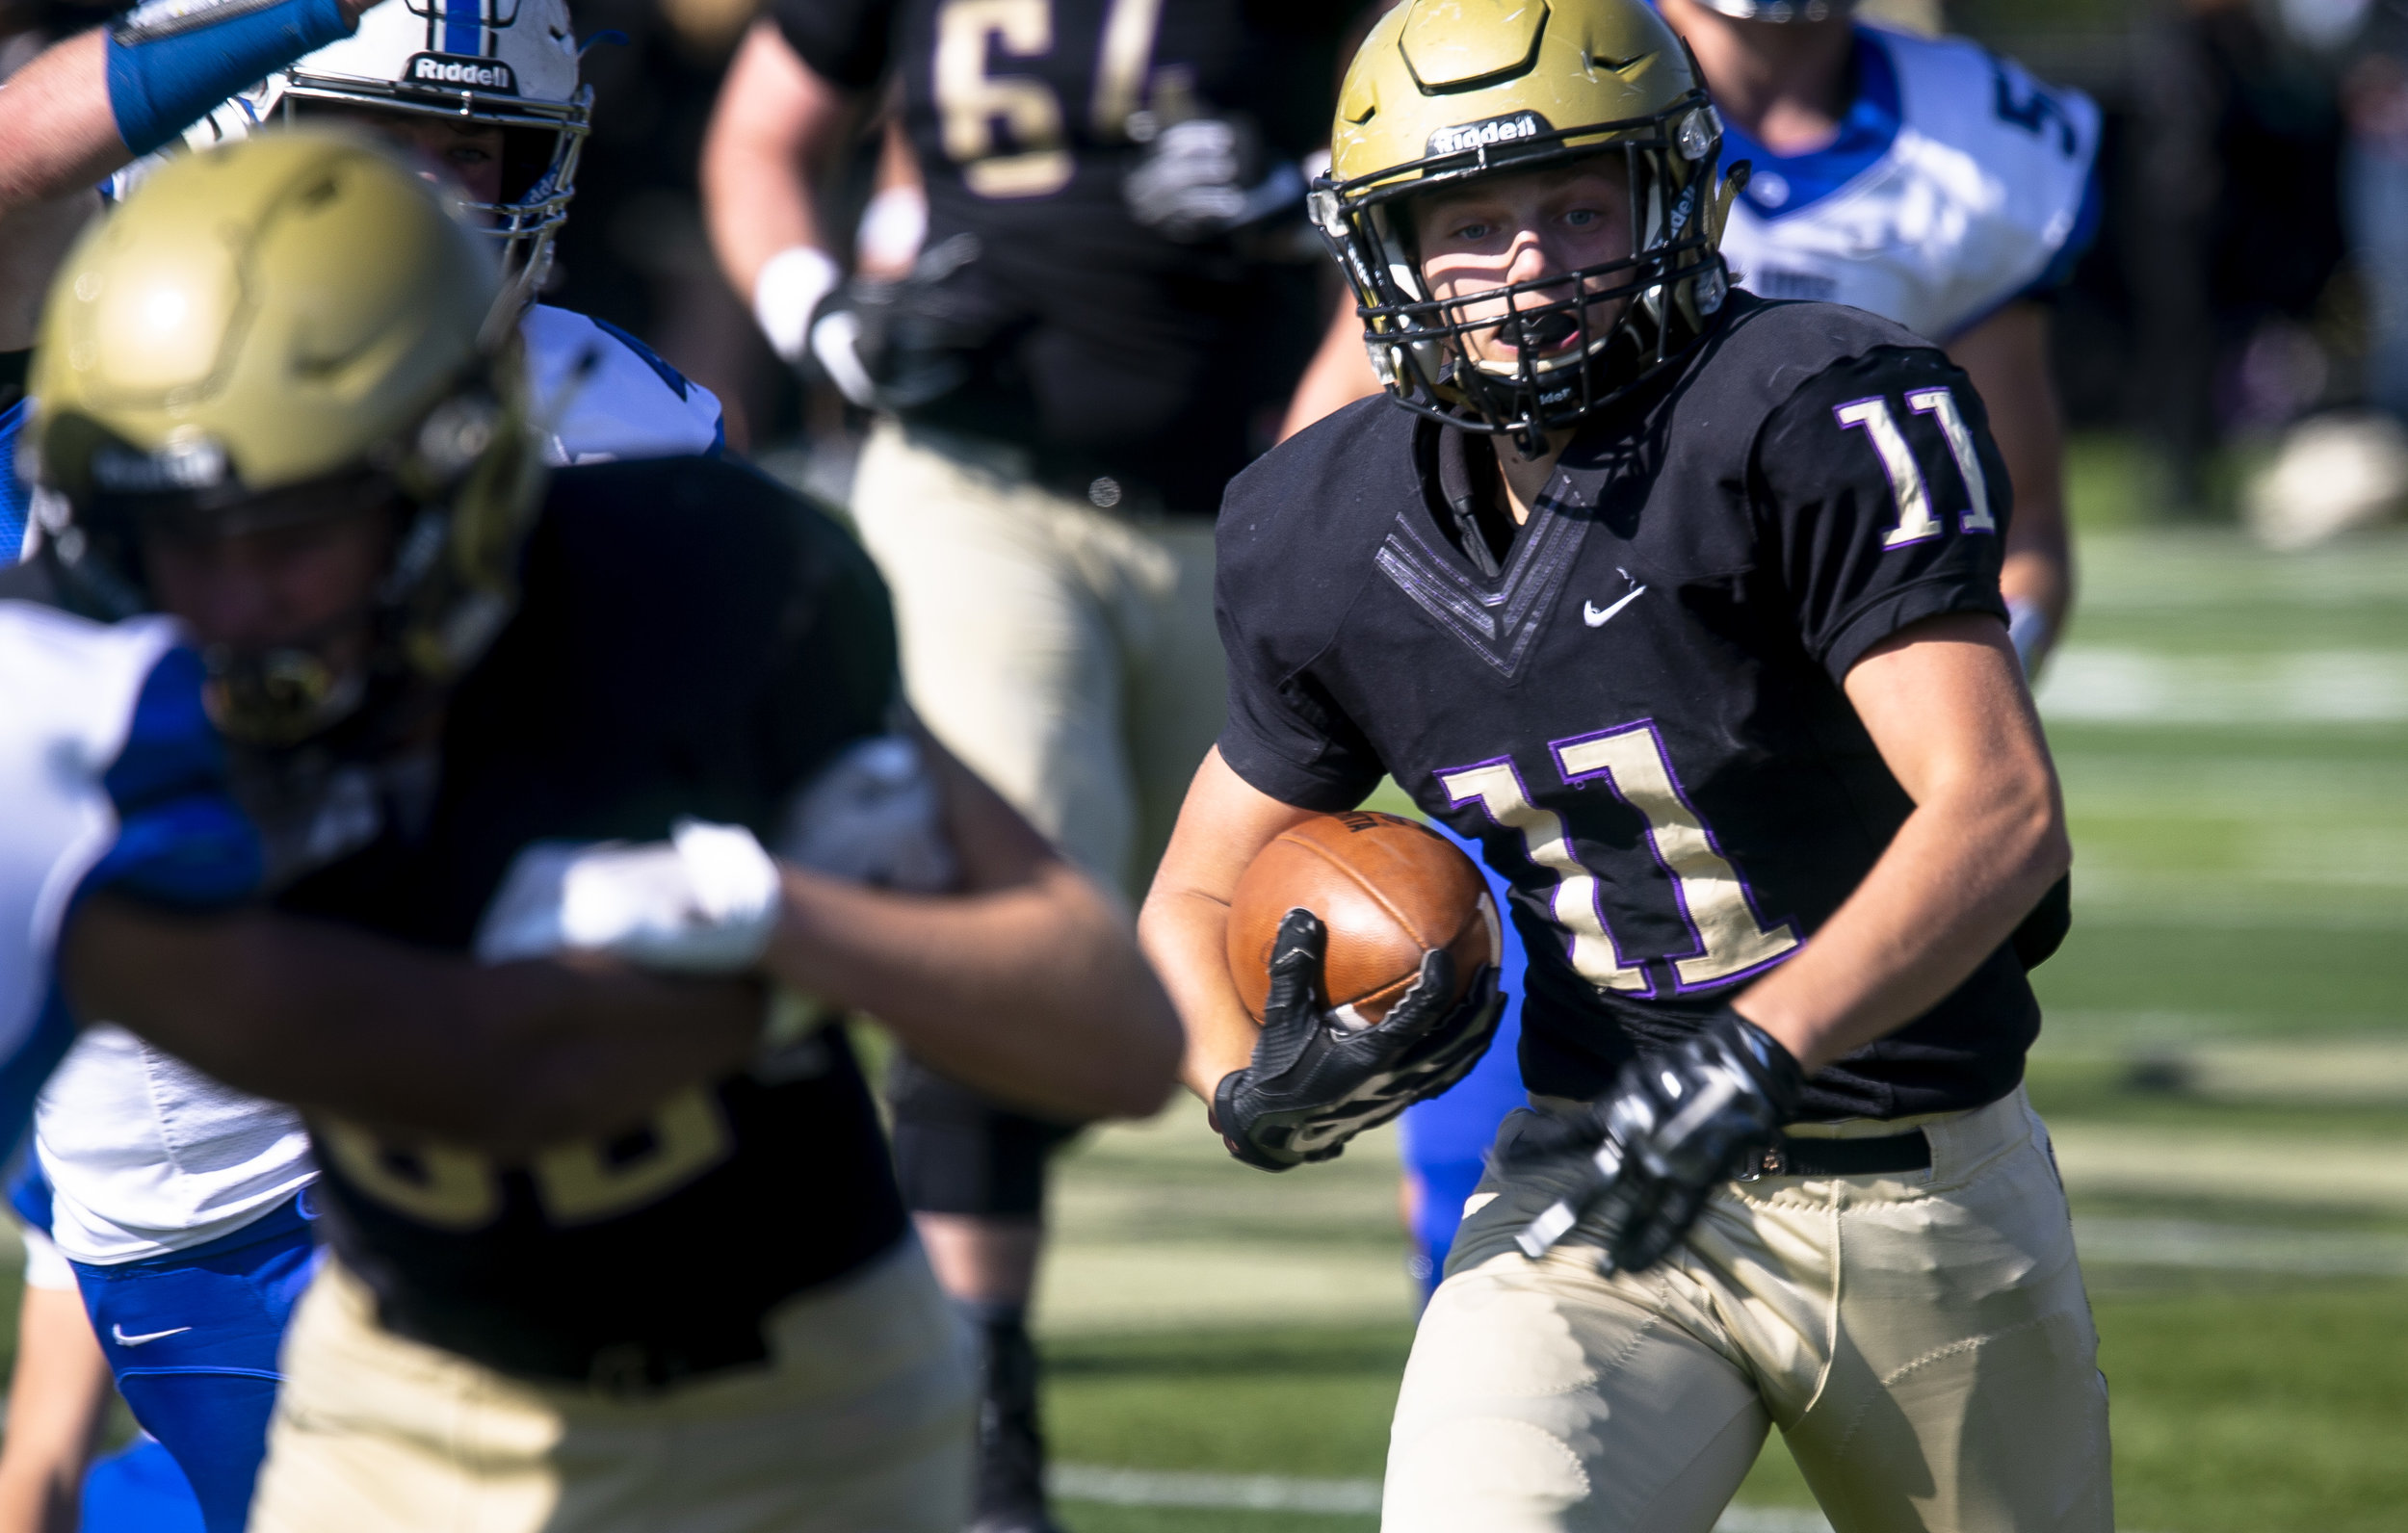 Sacred Heart-Griffin's Cade Holloway looks for running room in a Class 6A playoff game against Quincy Saturday, Oct. 27, 2018 at Ken Leonard Field in Springfield, Ill. [Rich Saal/The State Journal-Register]